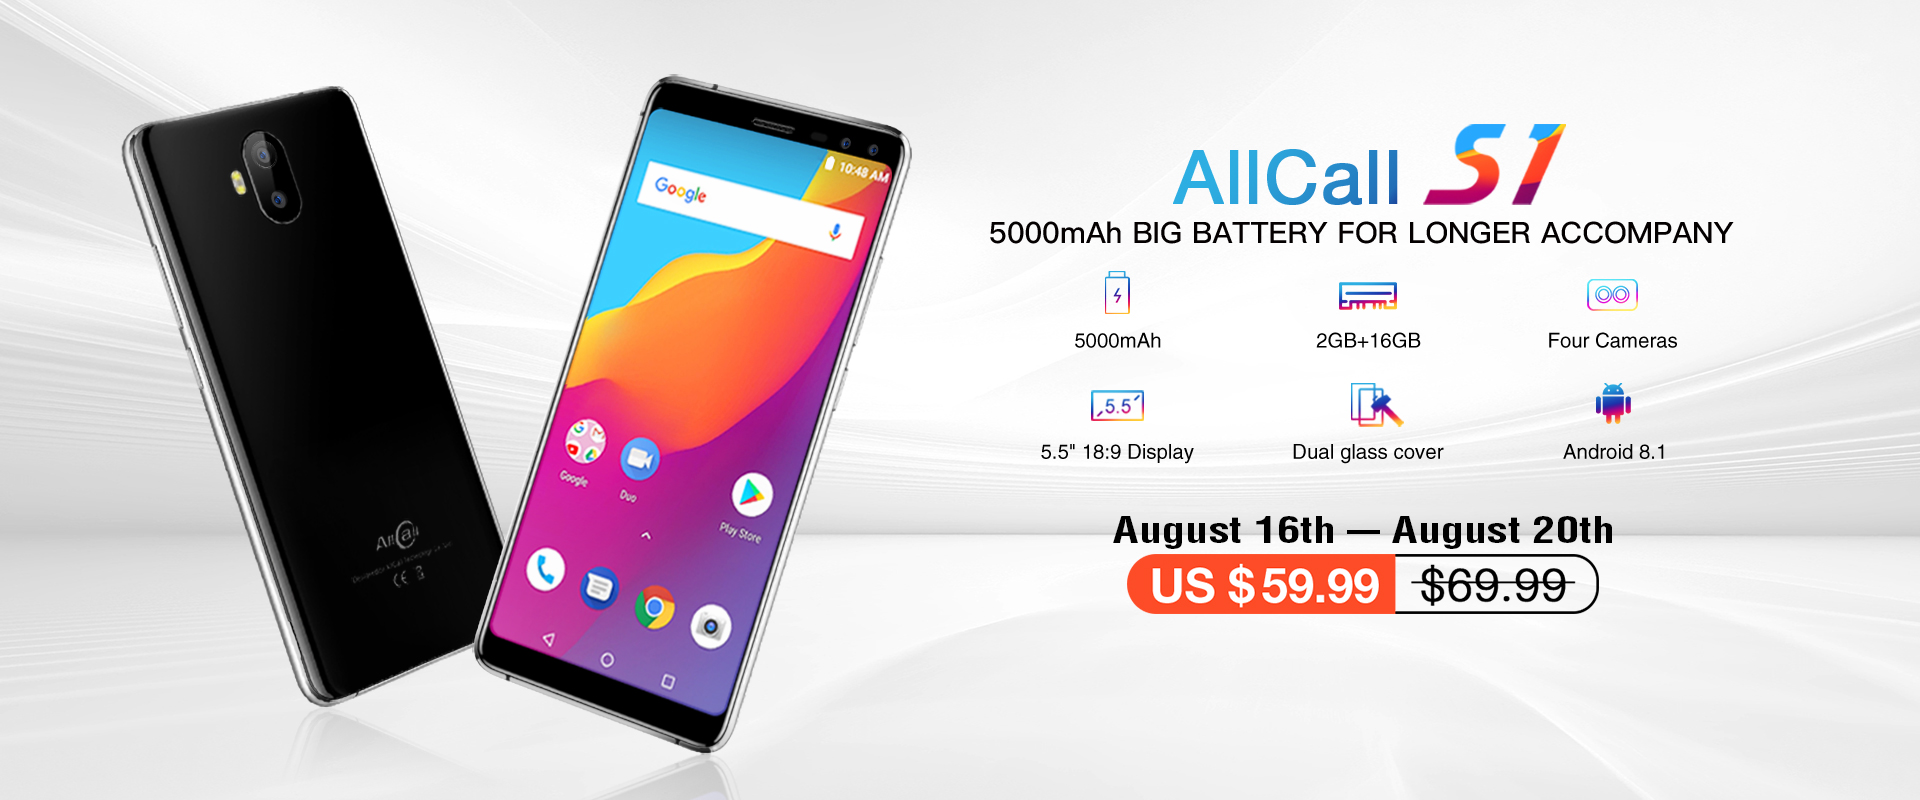 59.99$ for a 5000mAh large battery phone? this might be your last chance!!